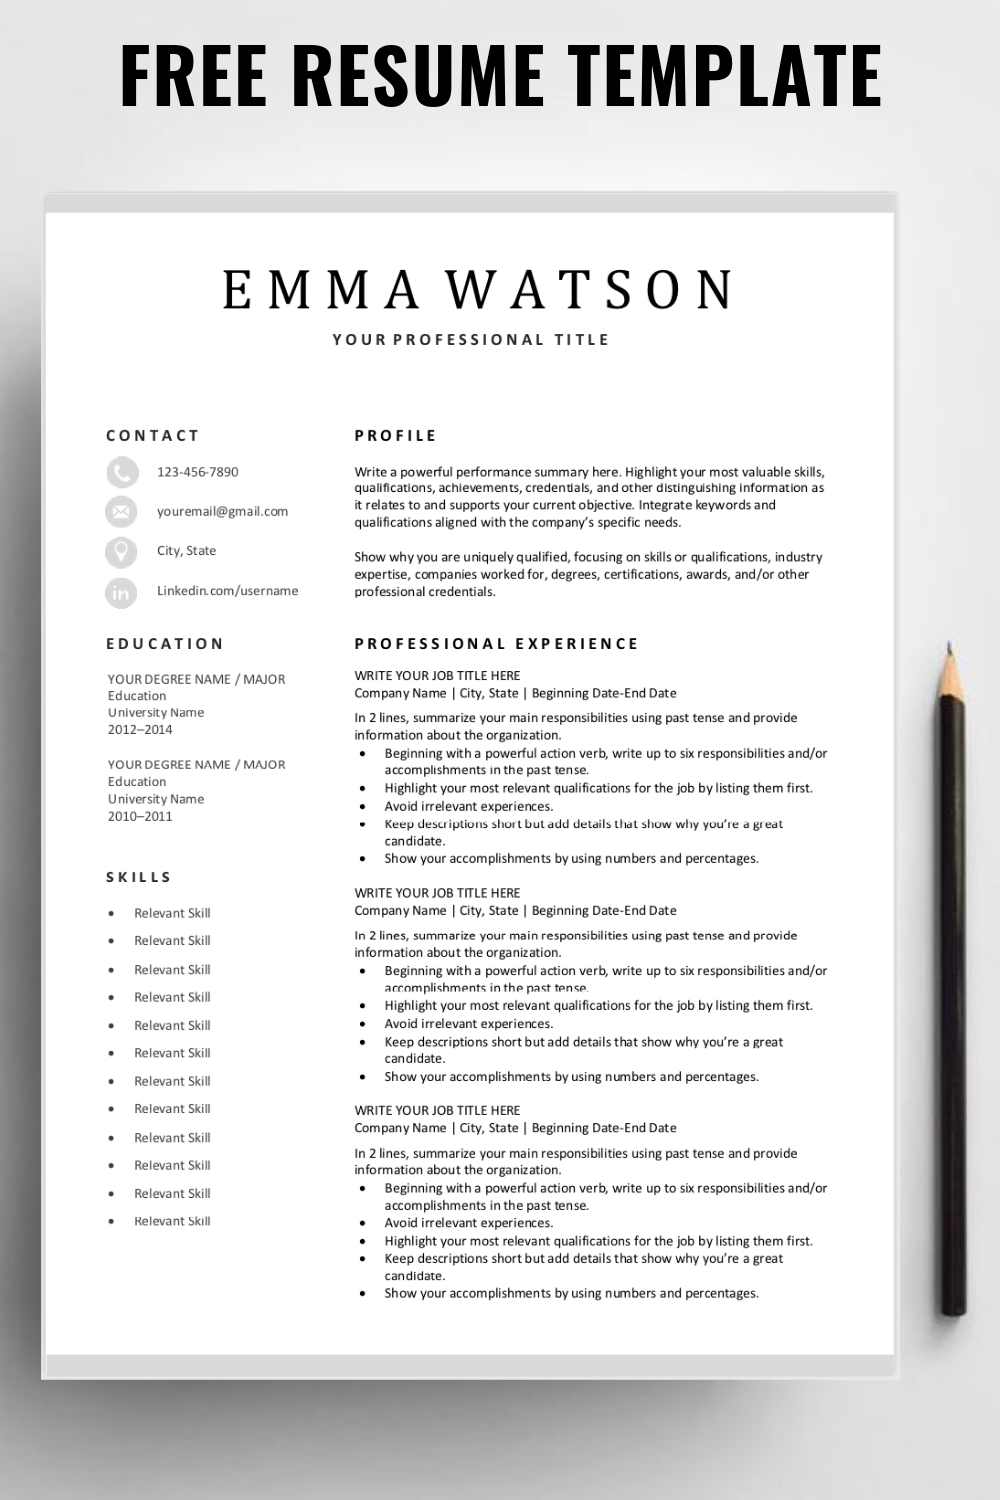 Looking For A Free Editable Resume Template Sign Up For Our Job Search Tips And Download T Resume Template Free Printable Resume Downloadable Resume Template